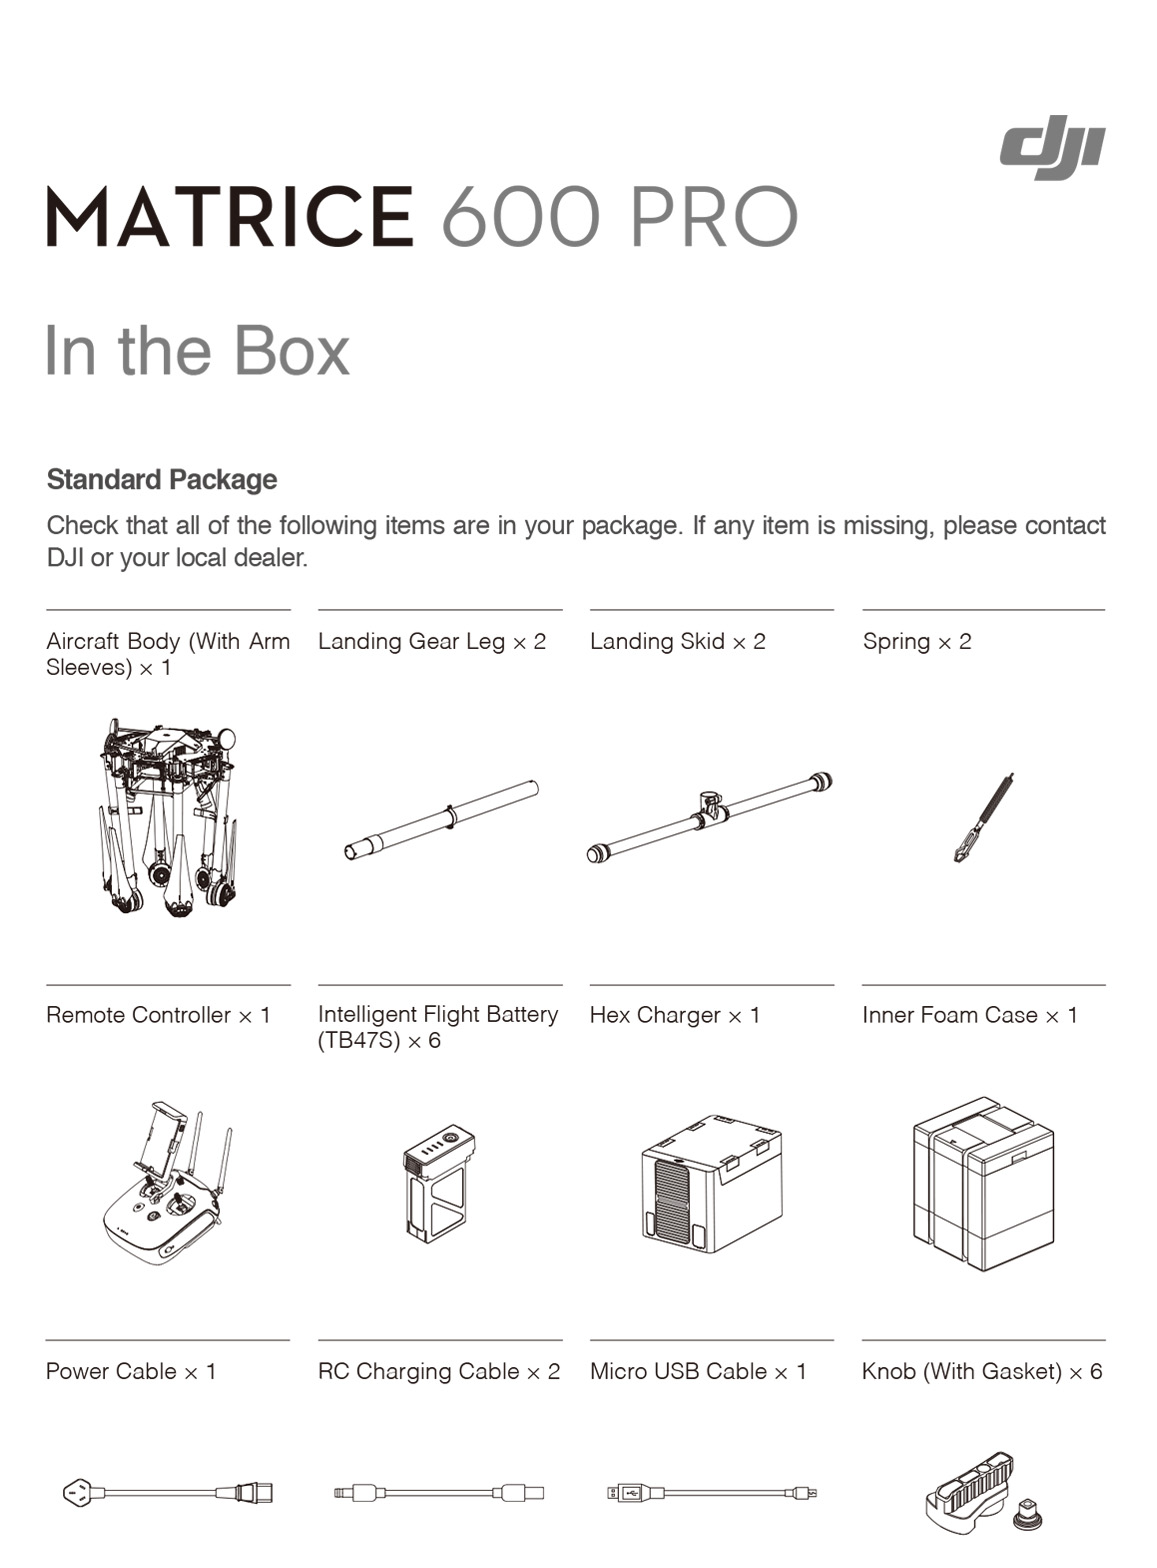 DJI Matrice 600 Pro What's Included